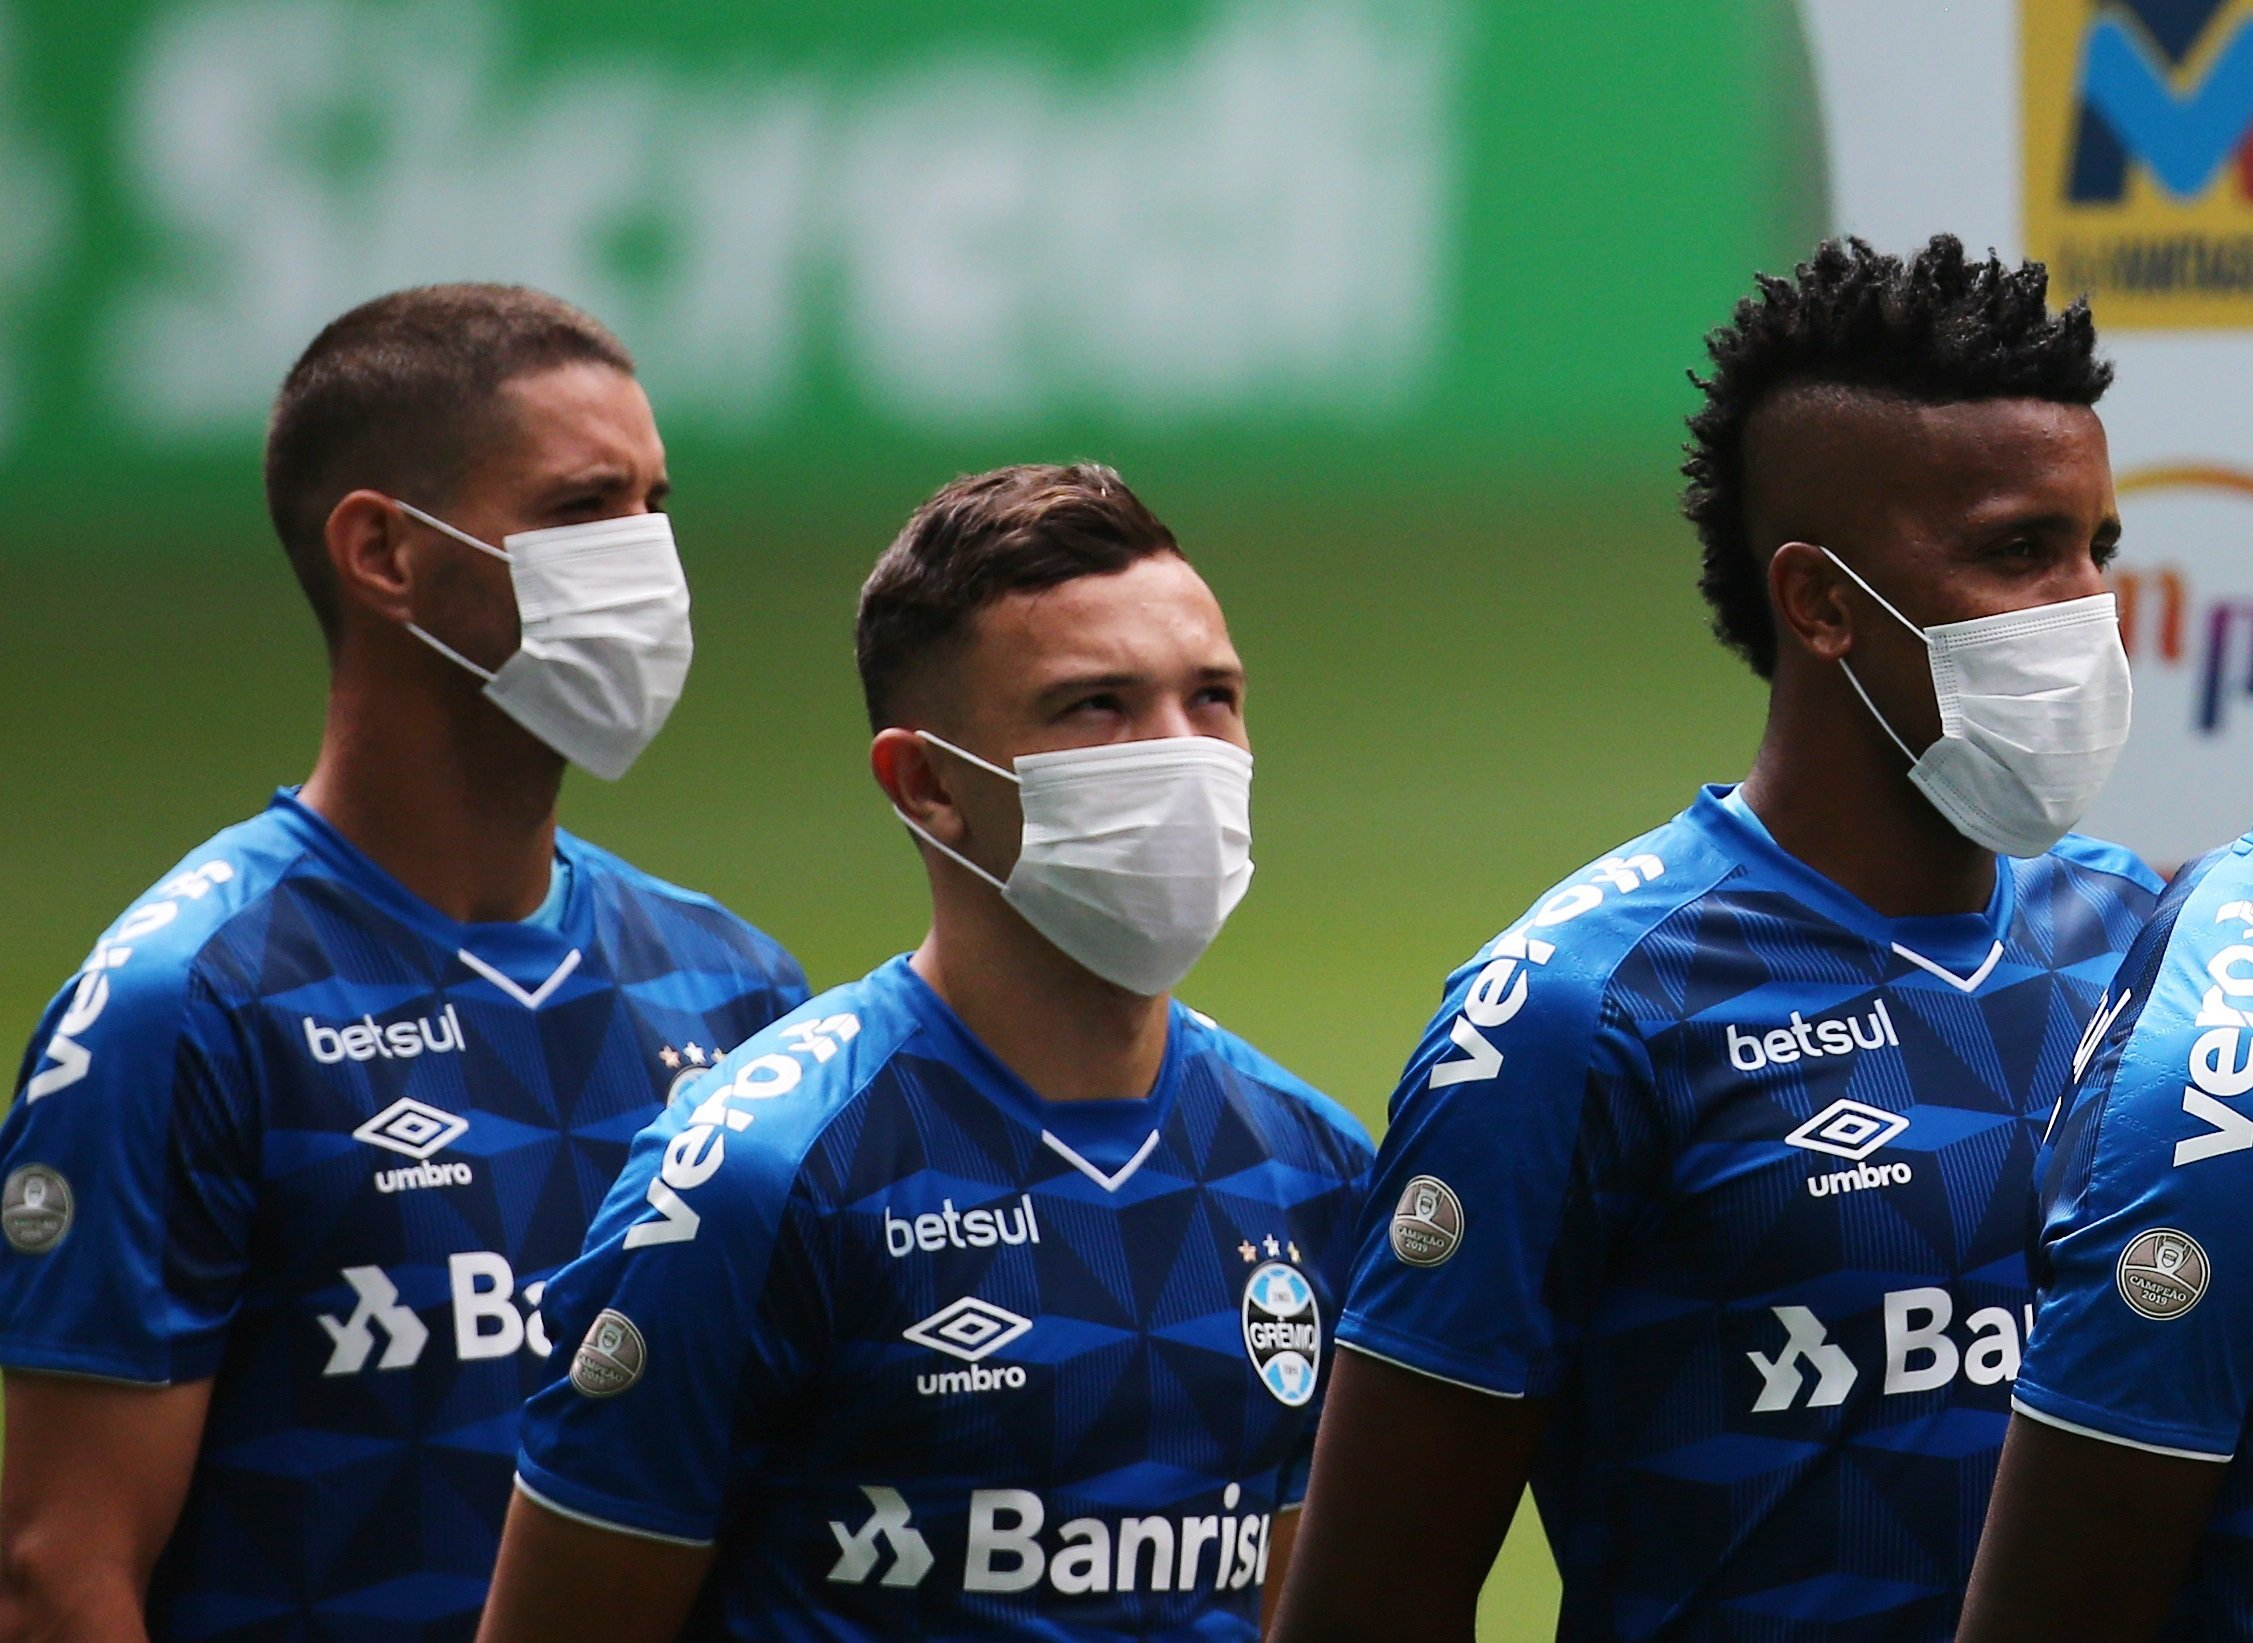 Soccer Football - Campeonato Gaucho - Gremio v Sao Luiz - Arena do Gremio, Porto Alegre, Brazil - March 15, 2020    Gremio players wearing masks before the match is played behind closed doors as the number of coronavirus cases grow around the world       REUTERS/Diego Vara